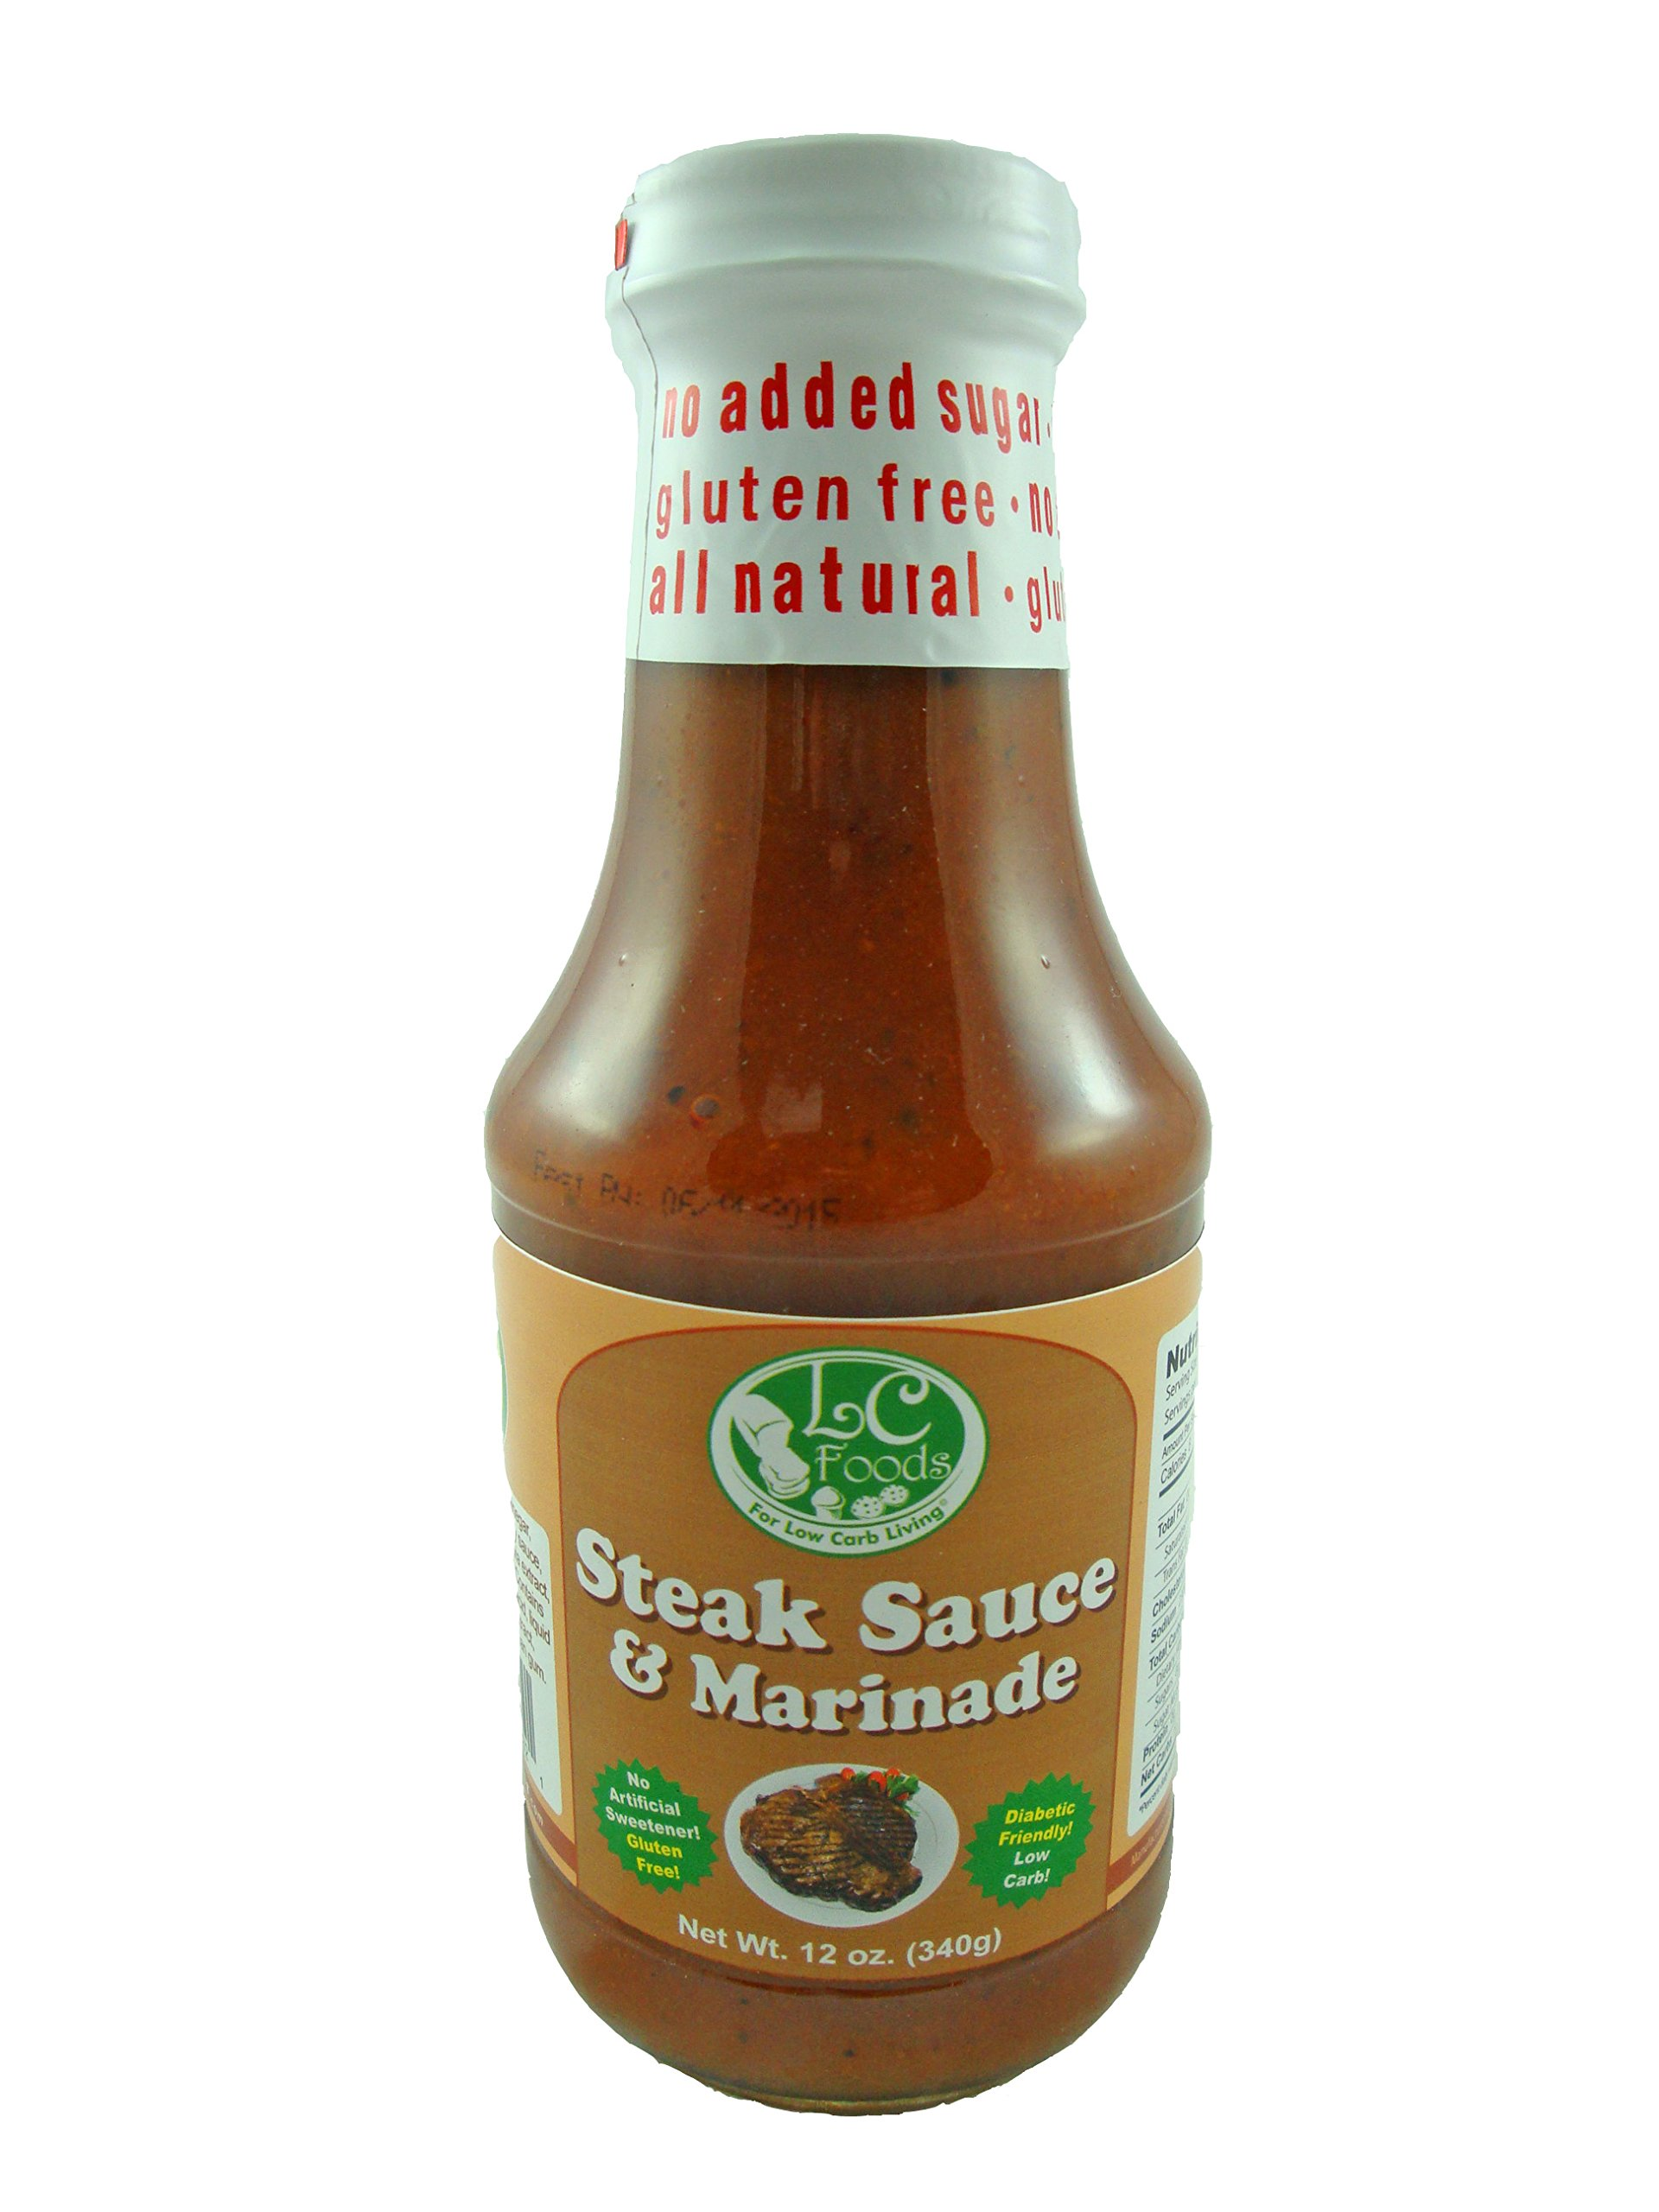 Low Carb Steak Sauce & Marinade - LC Foods - All Natural - Paleo - Gluten Free - No Sugar - Diabetic Friendly - 12 oz